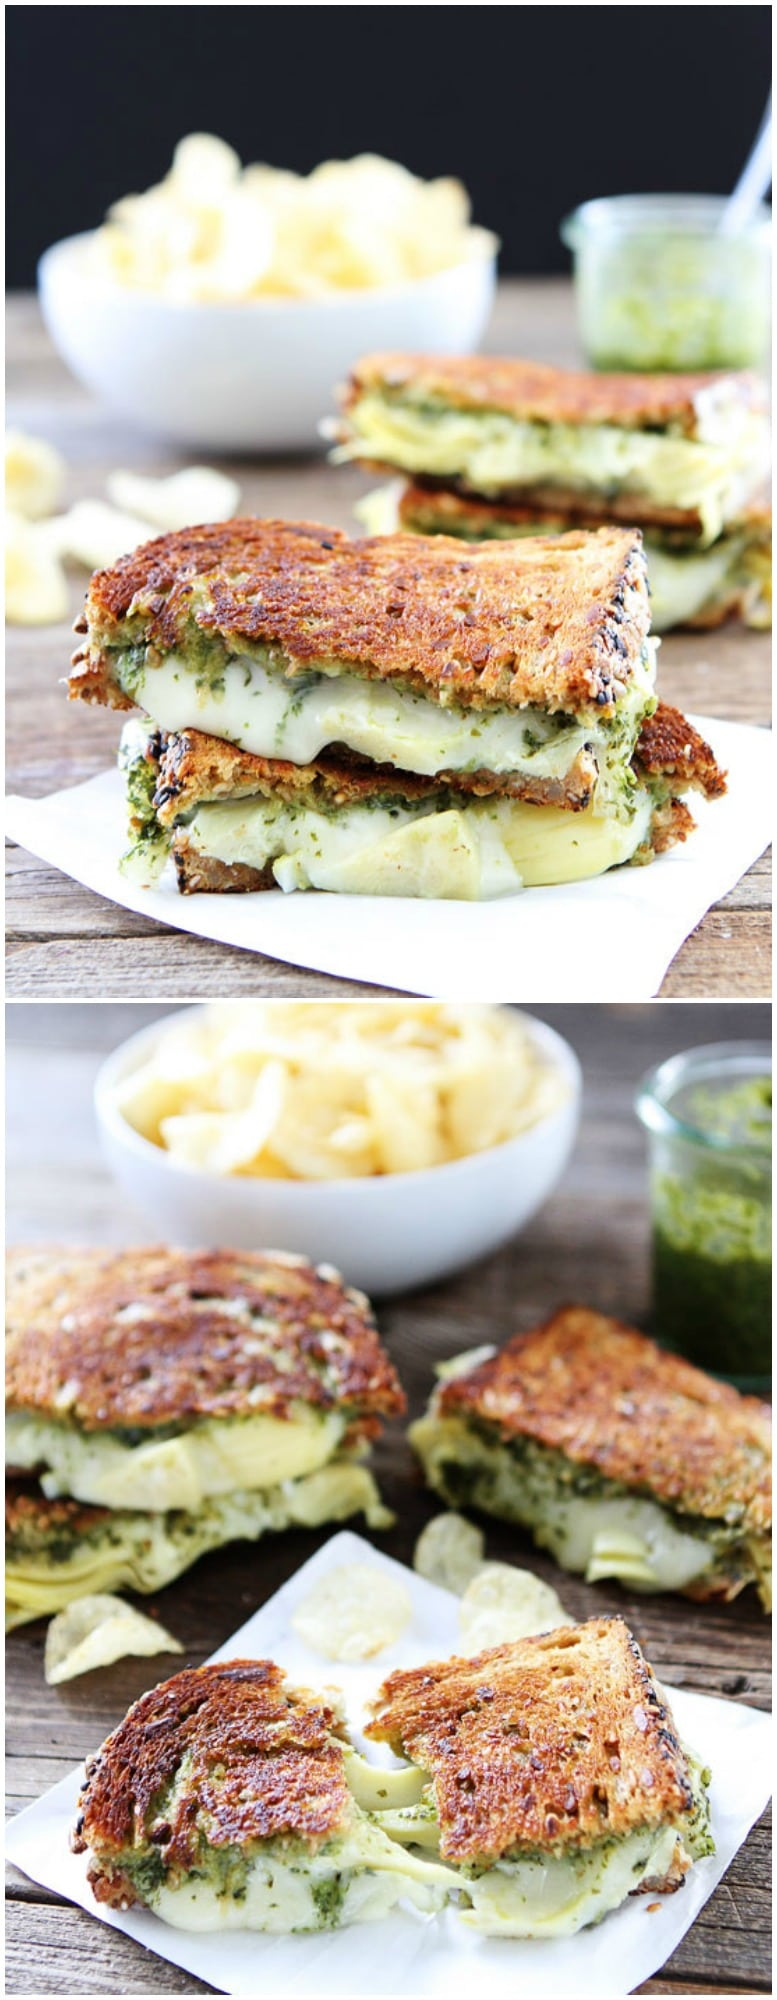 Pesto, Artichoke, and Havarti Grilled Cheese Recipe on twopeasandtheirpod.com This grilled cheese is bursting with flavor! A MUST make!